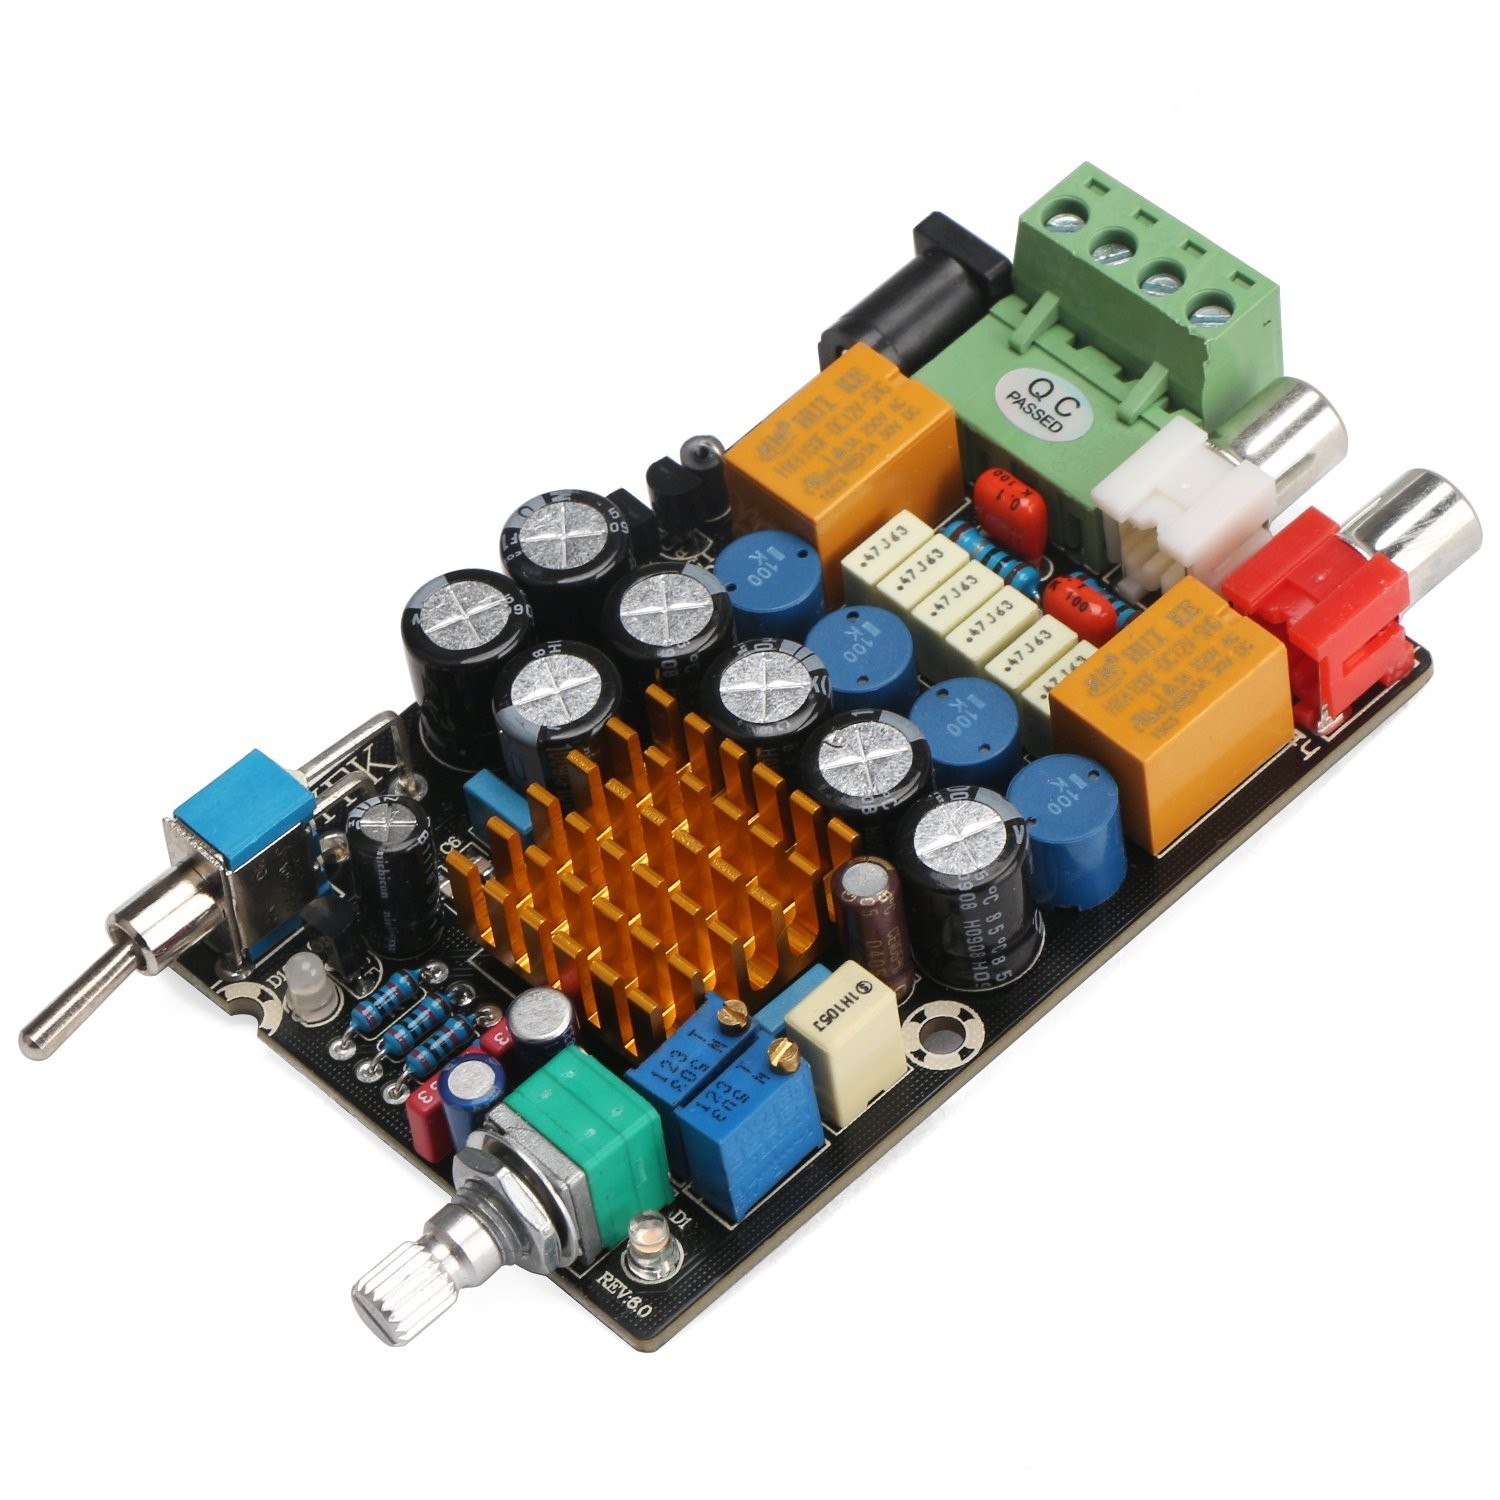 Riorand 12v Digital Amplifier 2ch Audio Stereo Power Amp Board Dc 11 25w Circuit Lightbox Moreview